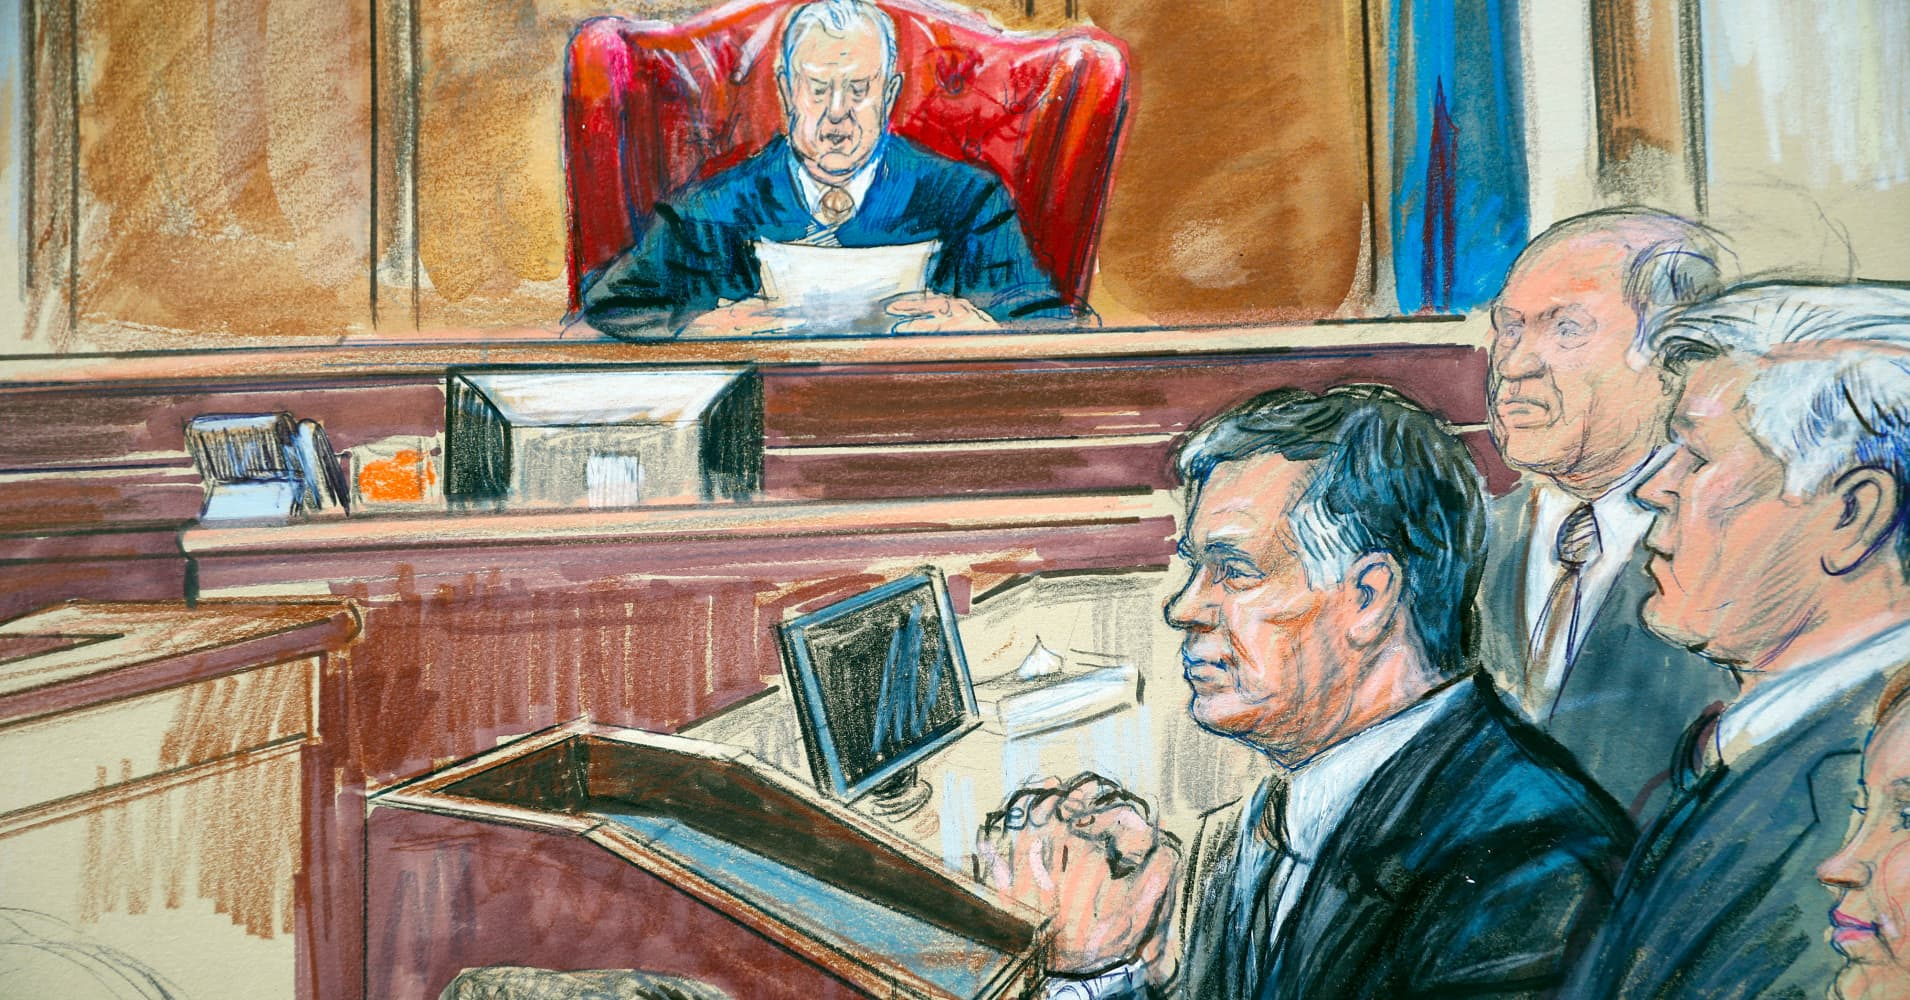 Judge slams 'unusual' aim to defer Manafort's sentencing until he's done cooperating with Mueller